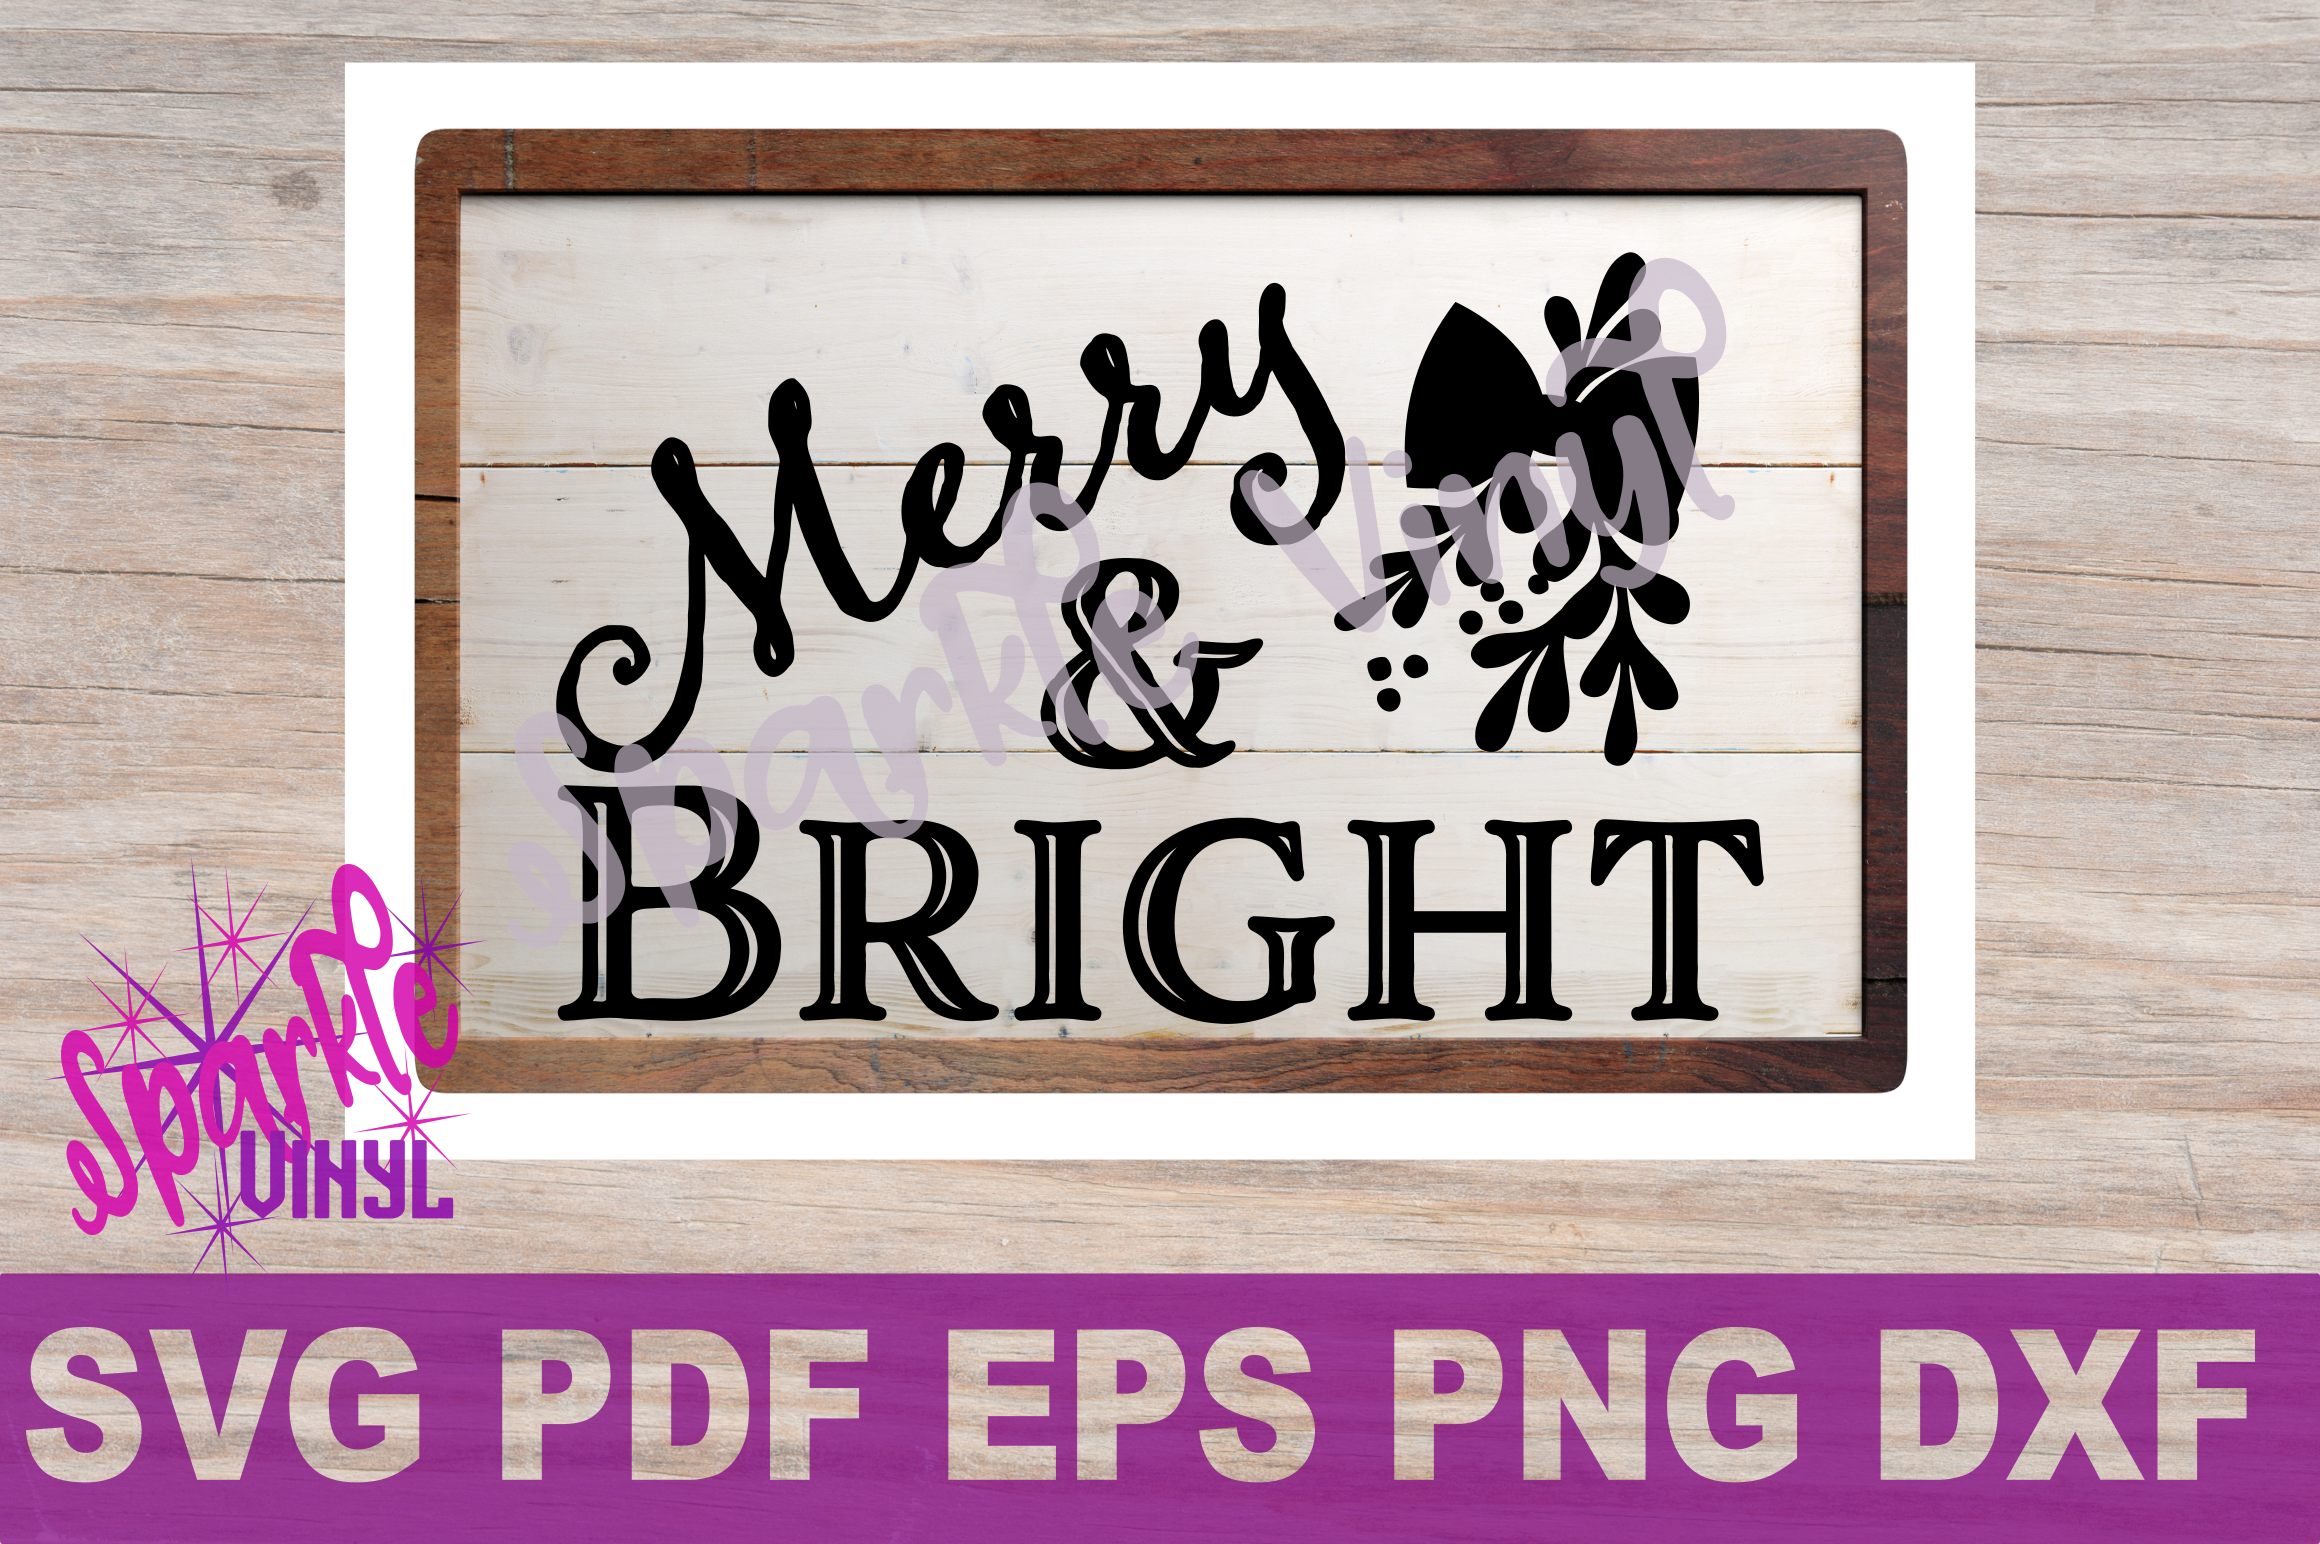 SVG Christmas Merry and Bright Sign Stencil Shirt Tshirt outfit svg file for circut and silhouette dxf eps png pdf  Christmas printable example image 5